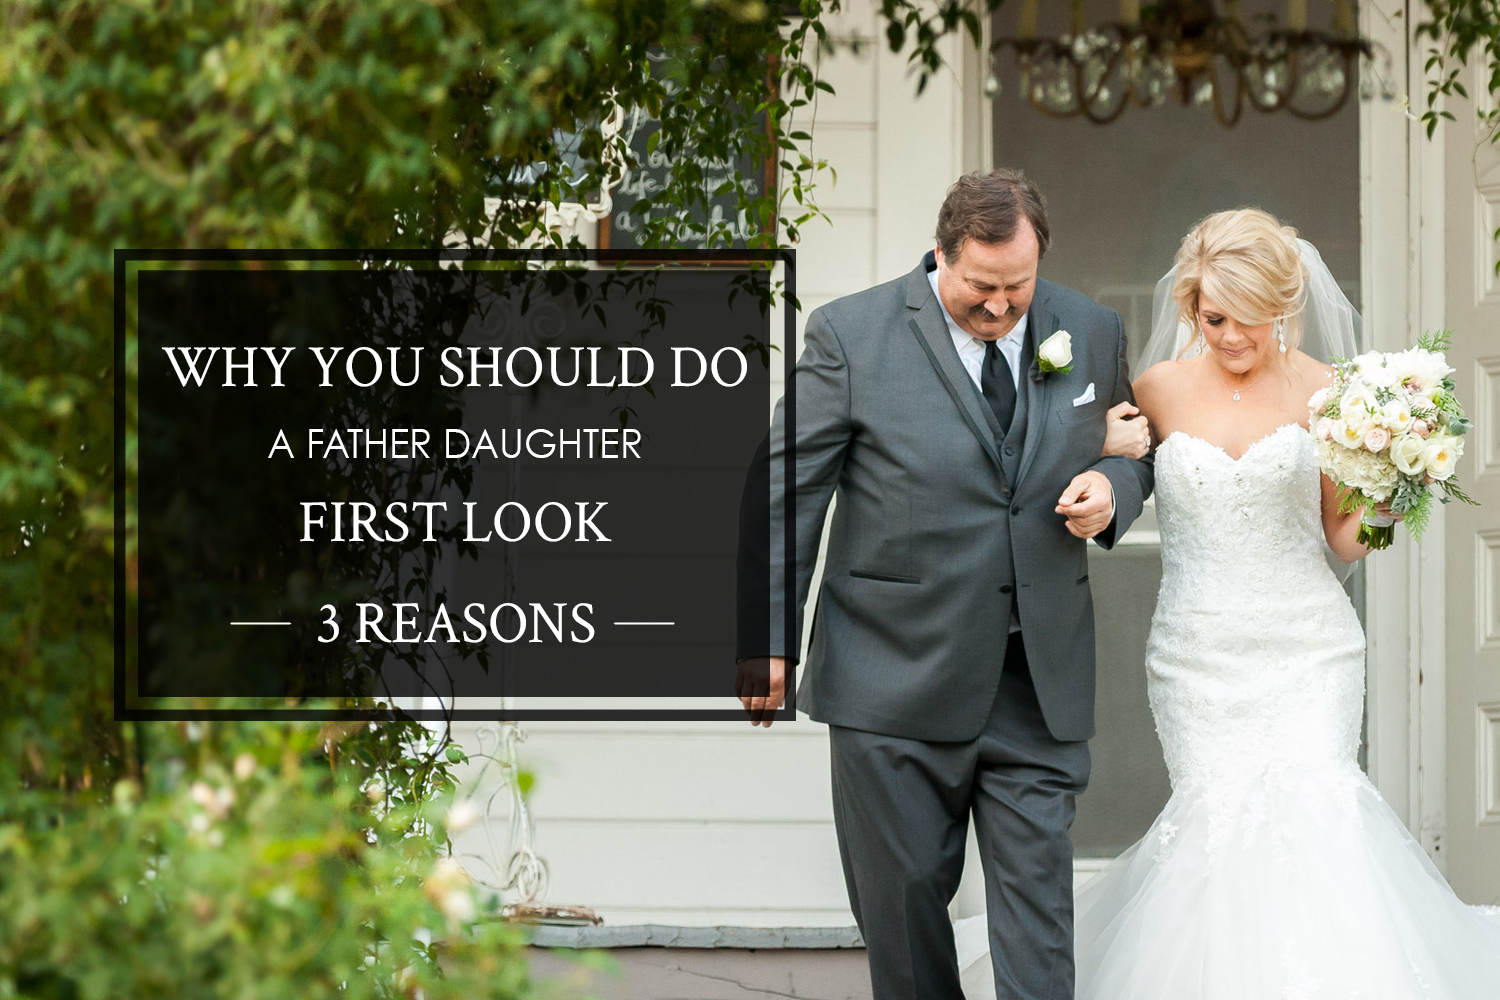 Why you should have a father daughter first look, 3 reasons why father daughter first looks are beautiful, Cavin Elizabeth Photography